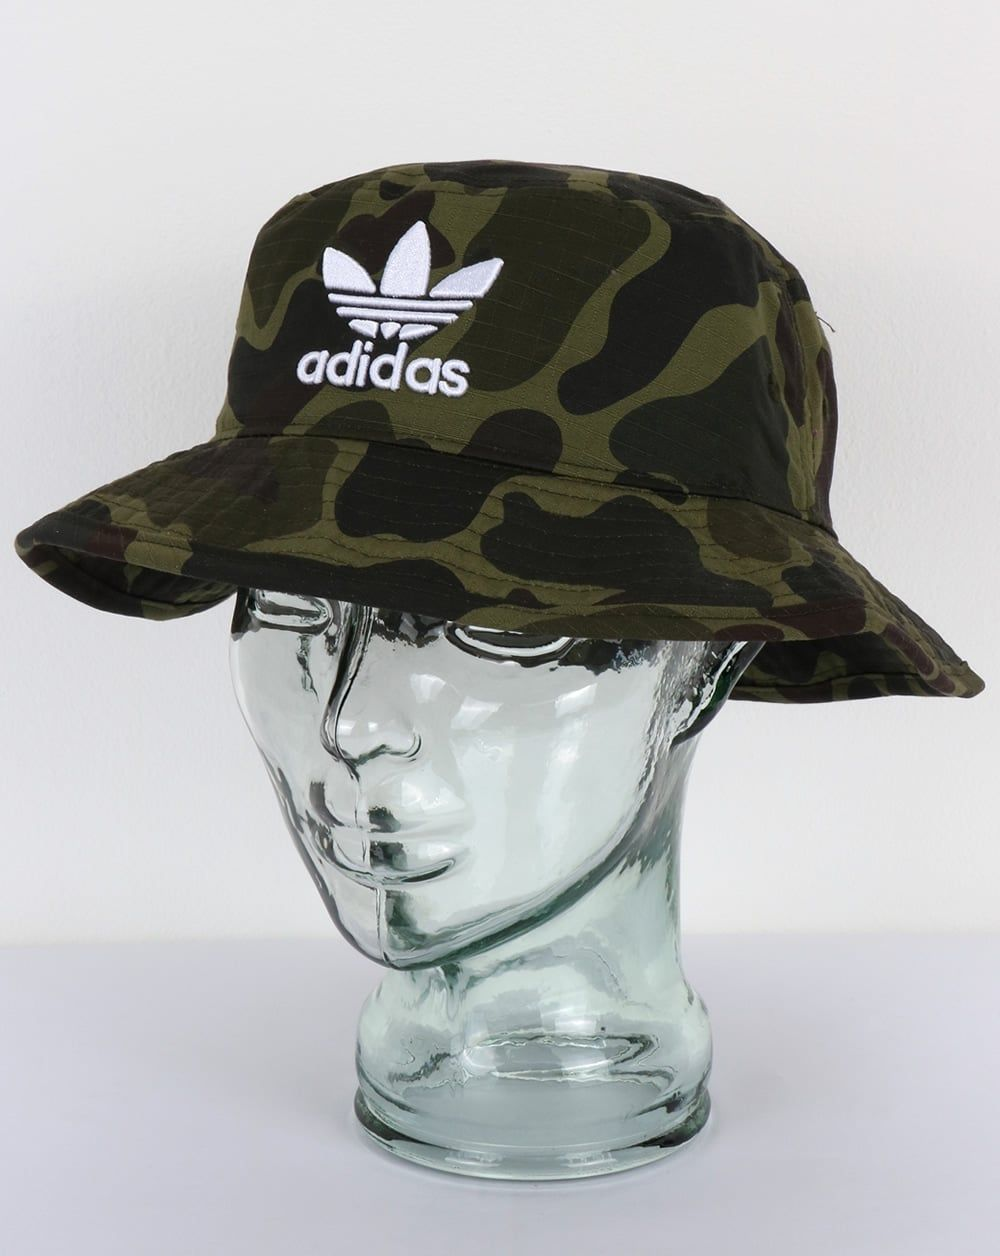 Adidas Originals Bucket Hat Camo | I need in 2019 | Hats